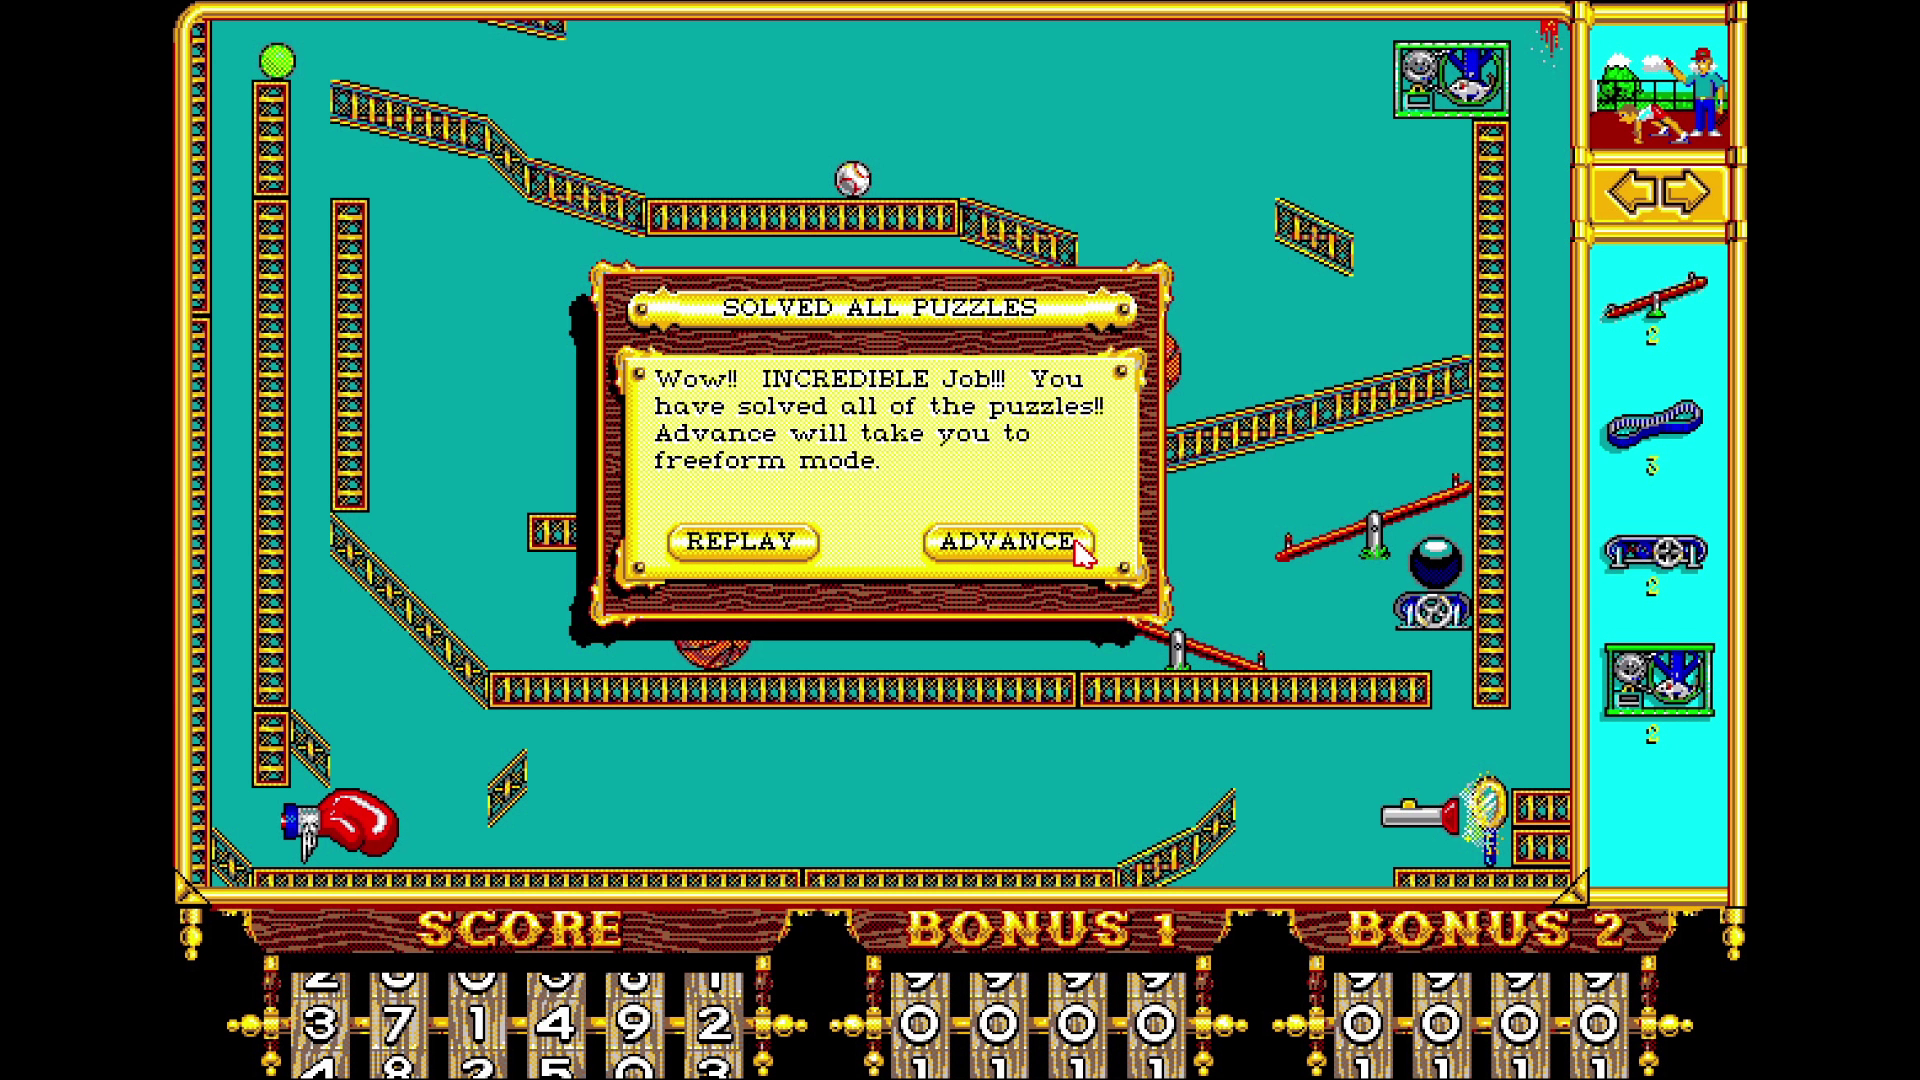 Bartjaah: The Incredible Machine (PC Emulated / DOSBox) 371,492 points on 2015-01-20 13:51:28